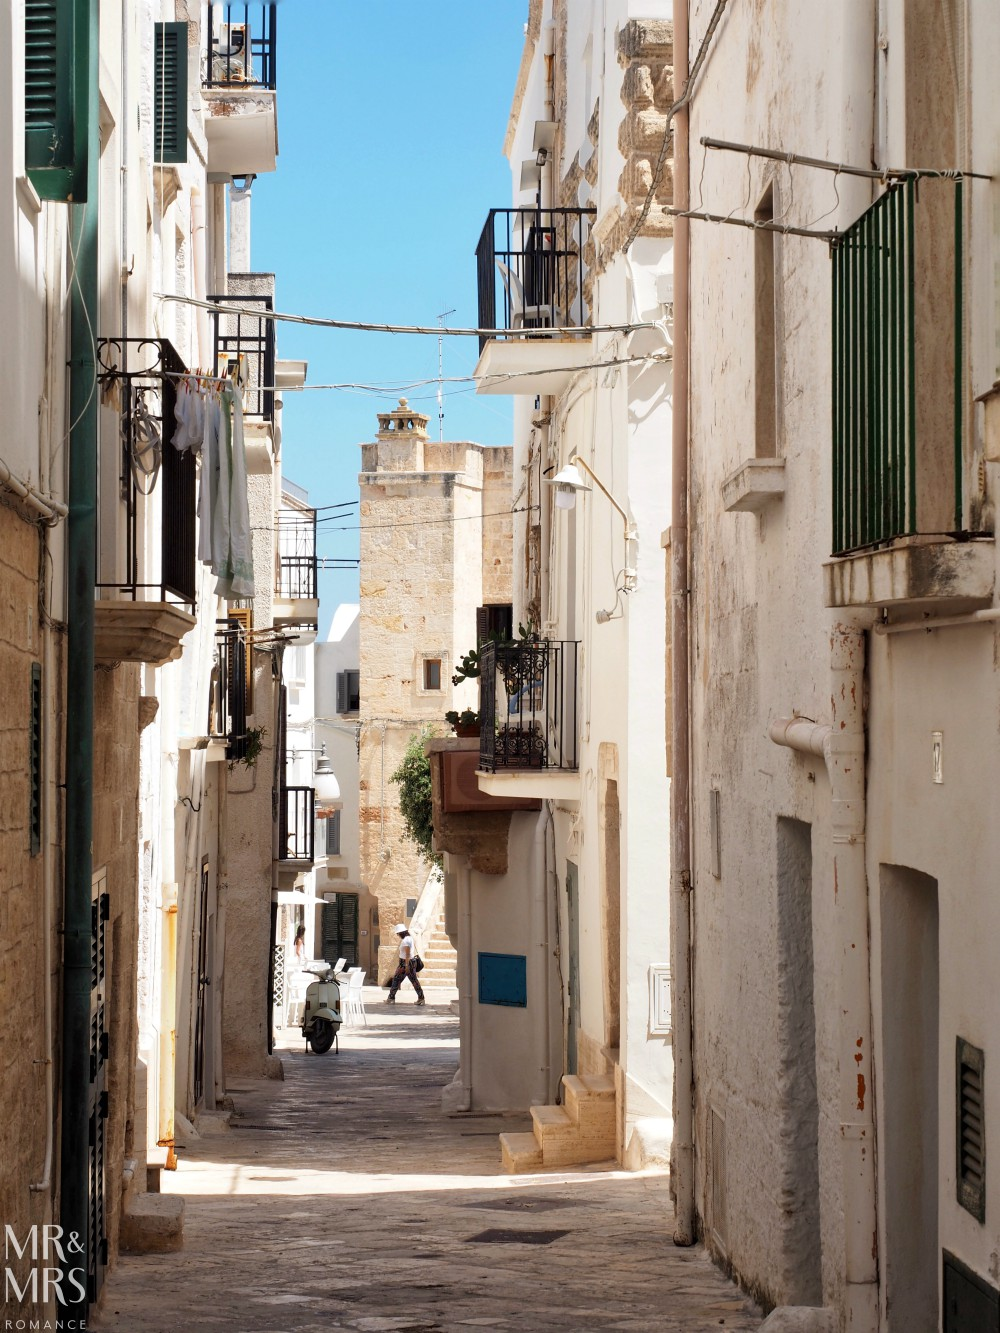 How to travel around Puglia - Polignano a Mare streets